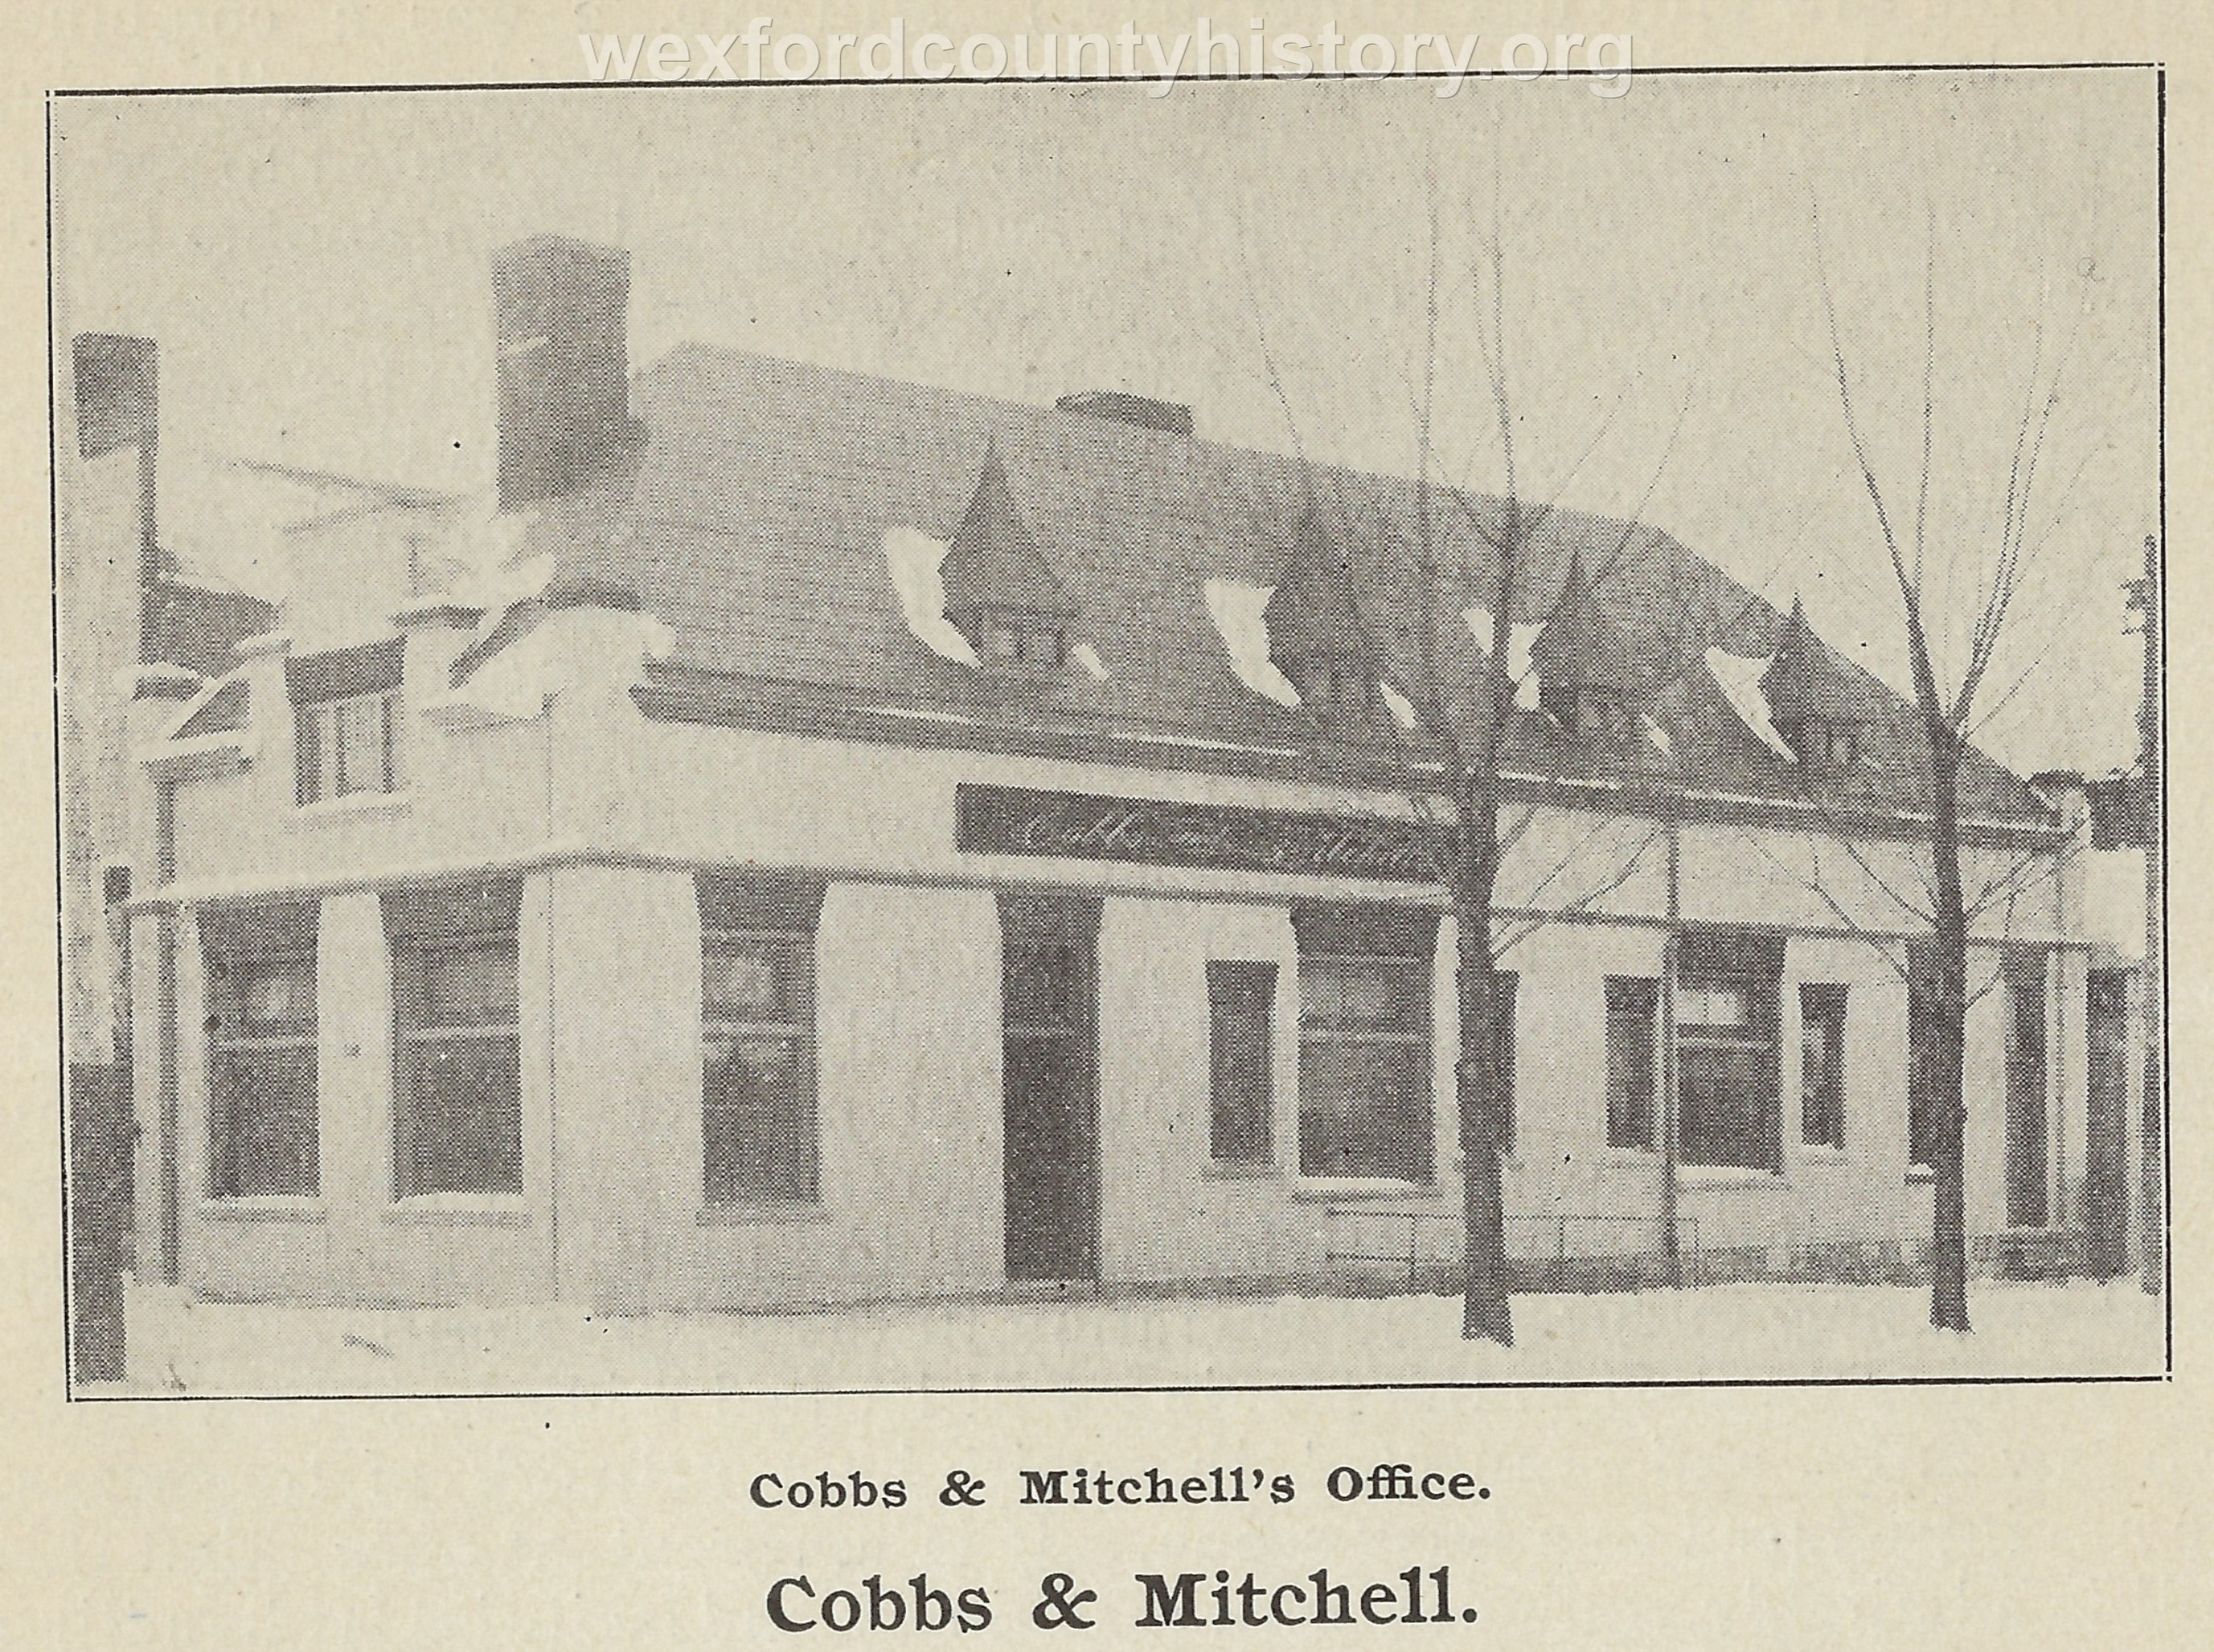 Cadillac-Business-Cobbs-Mitchell-Lumber-Office-Southwest-corner-of-West-Cass-and-South-Mitchell-Street-1-3